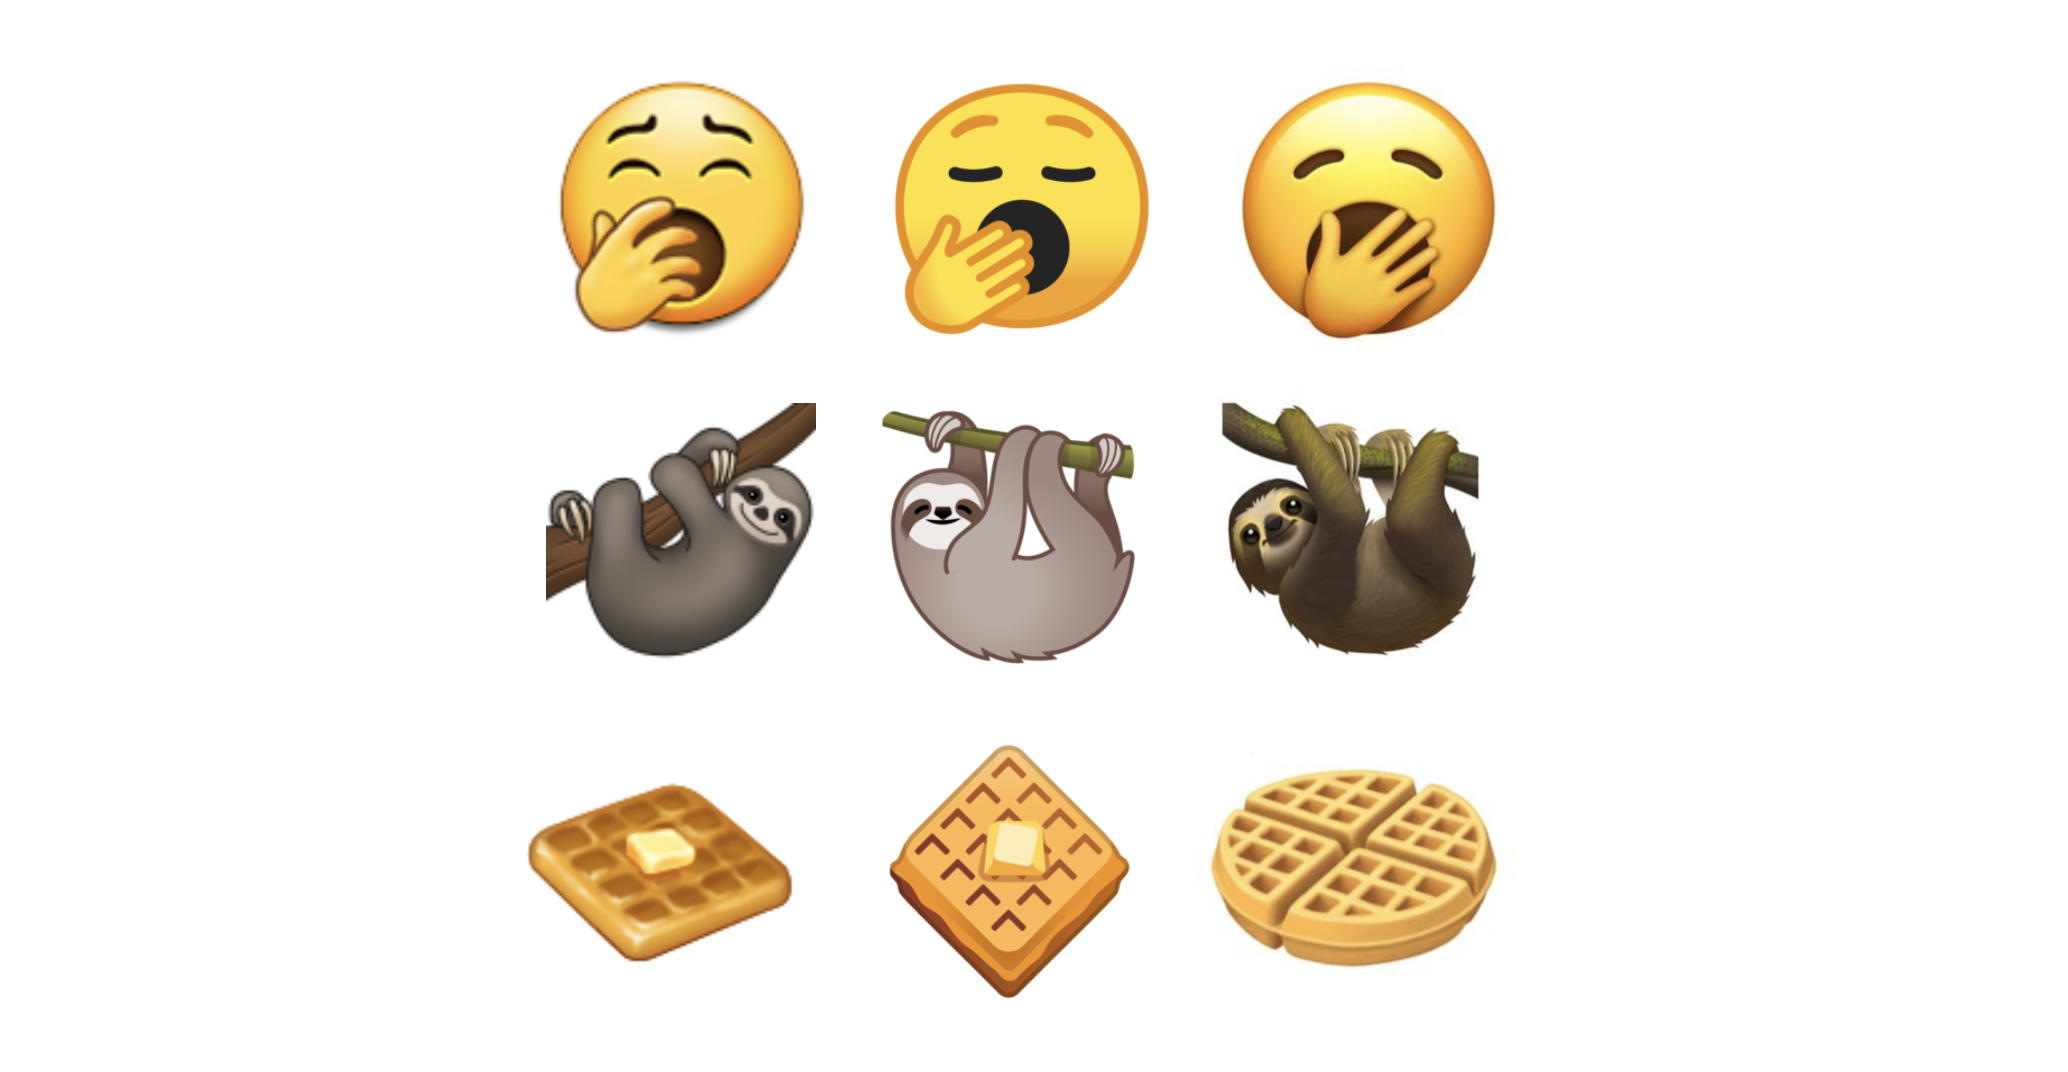 When are the new emojis coming out?